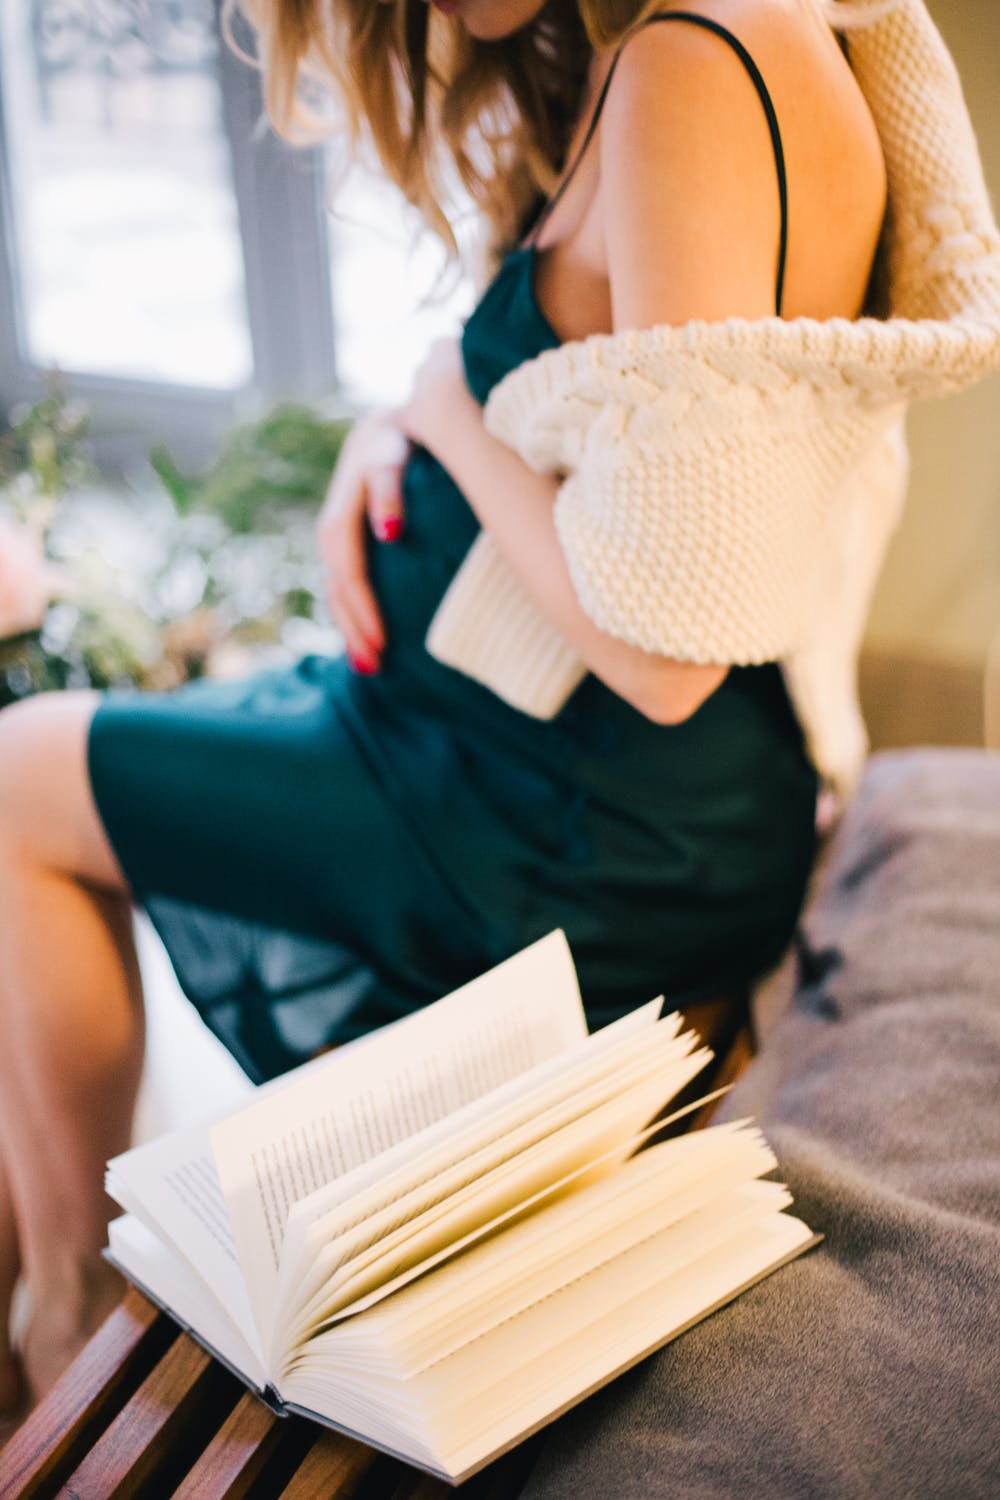 Pregnant woman sitting on a chair. | Photo: Pexels